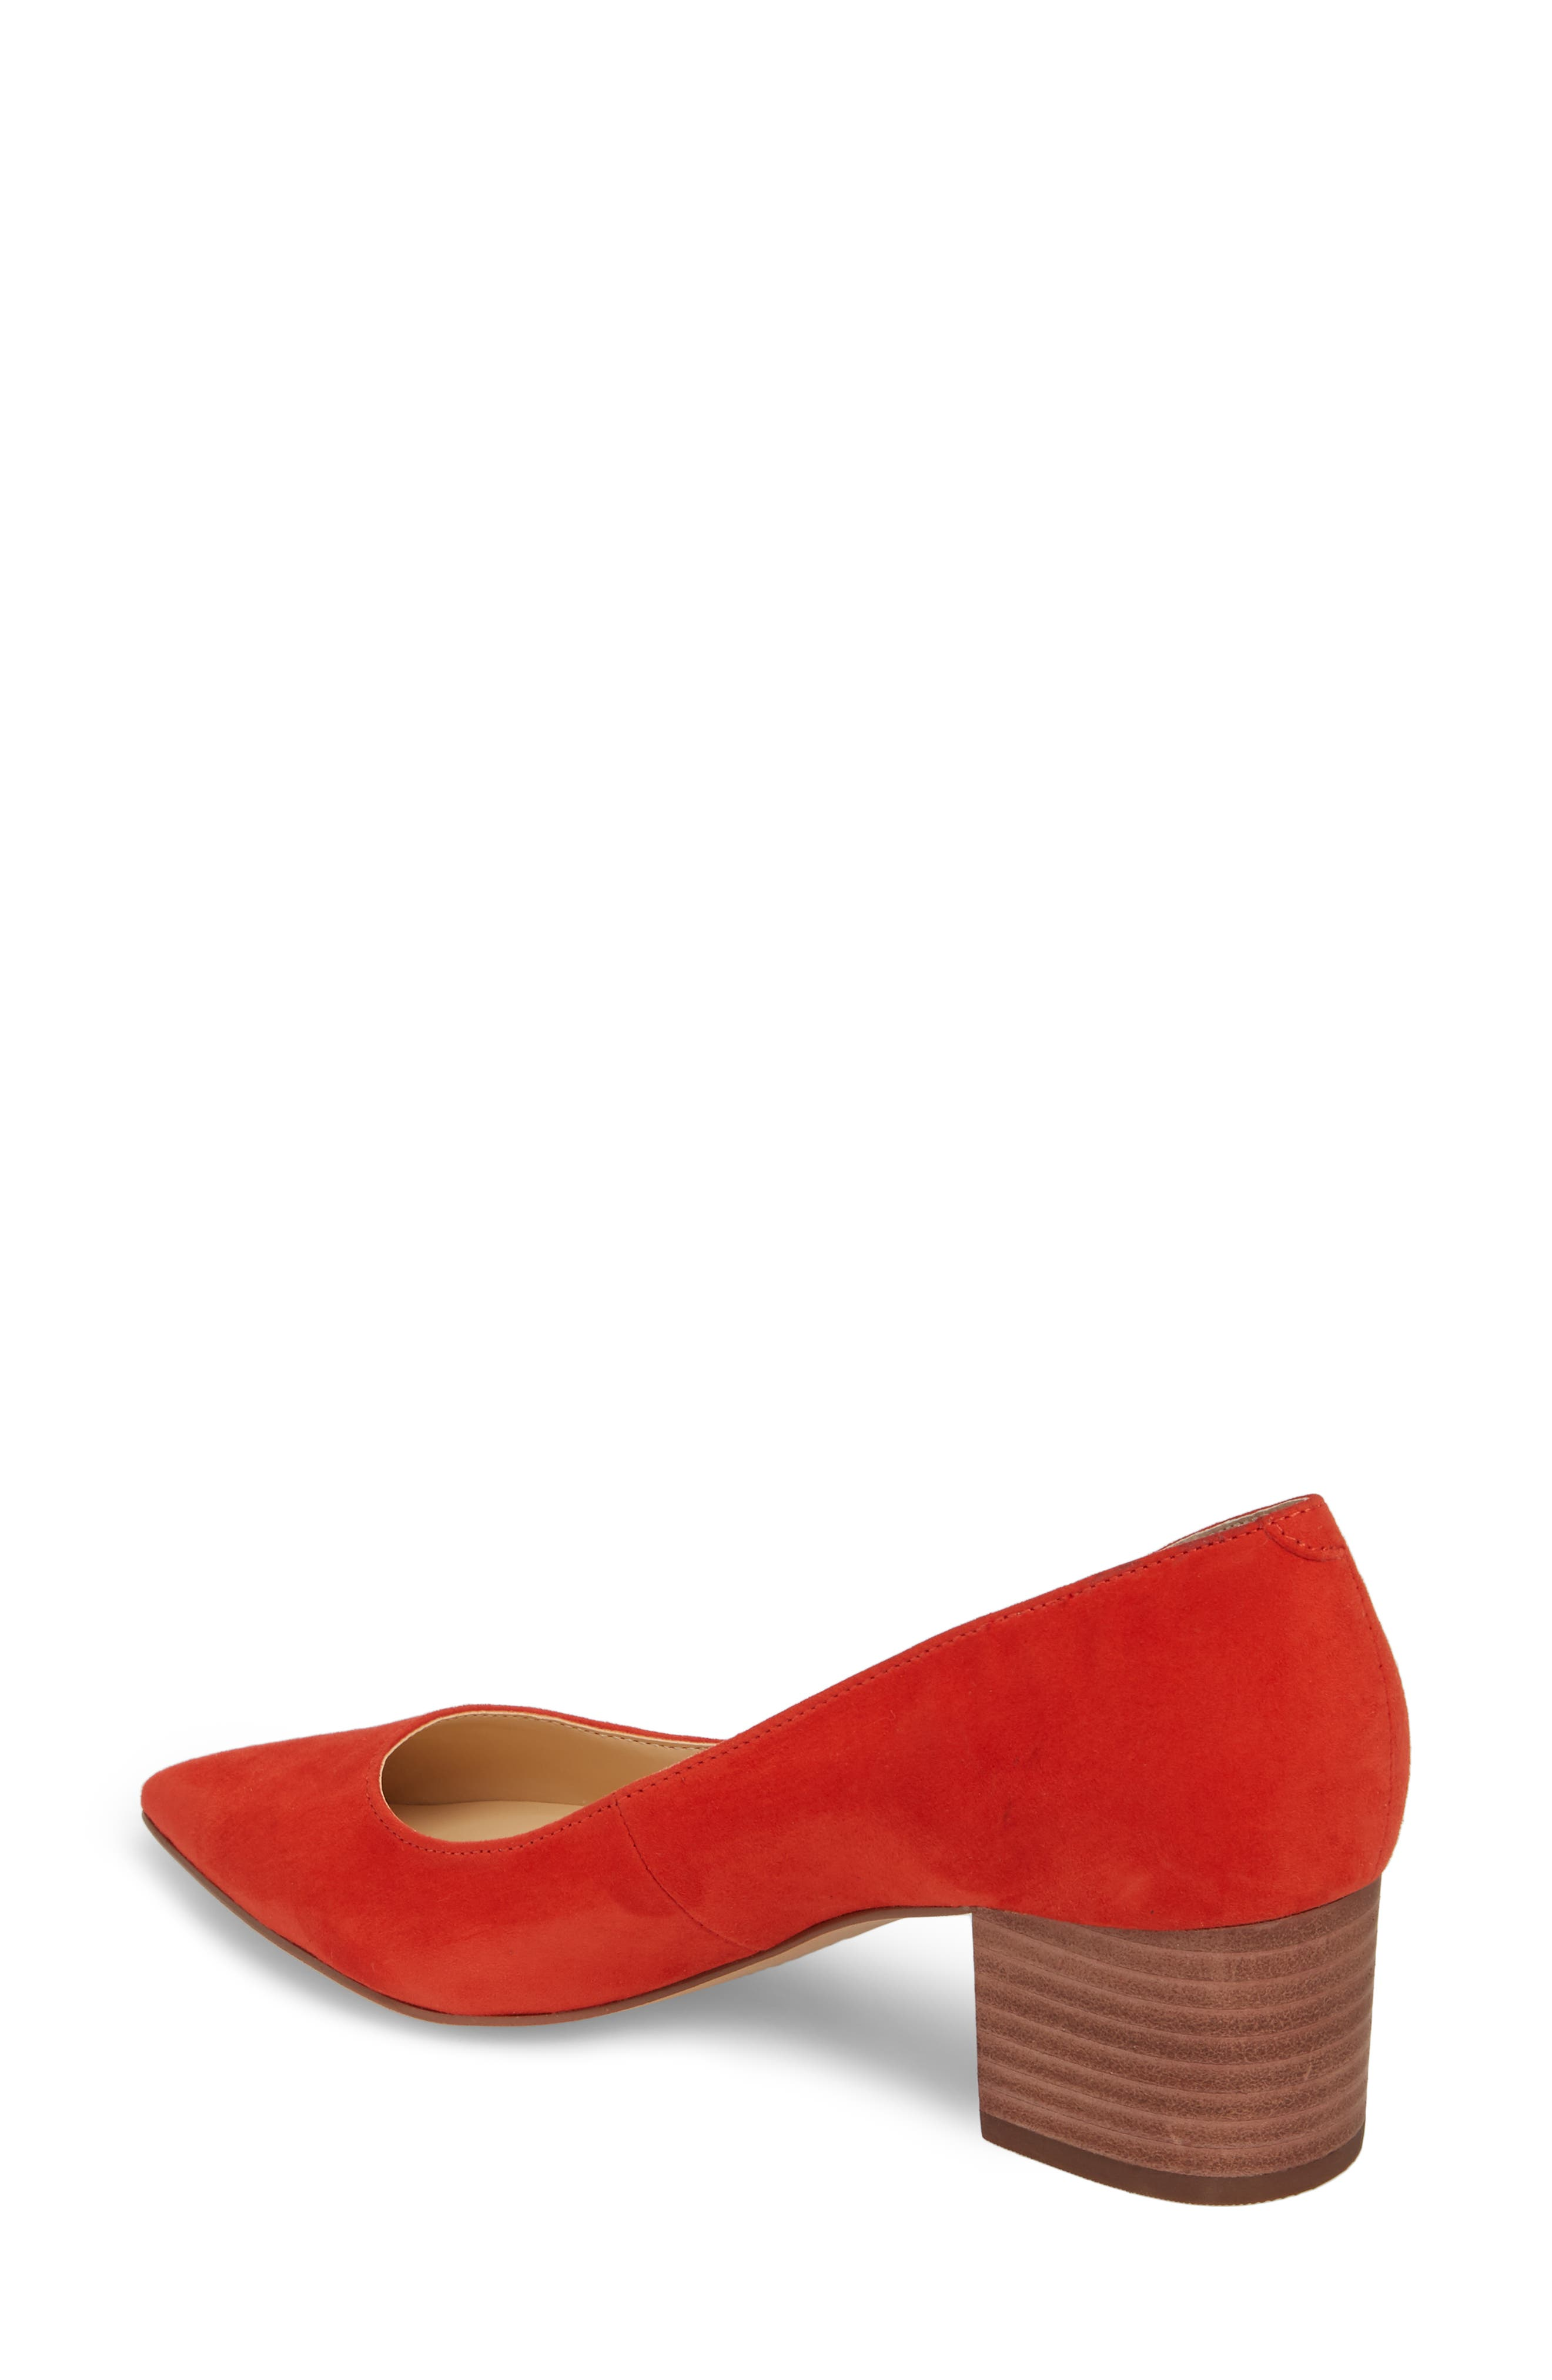 Andorra Genuine Calf Hair Pump,                             Alternate thumbnail 10, color,